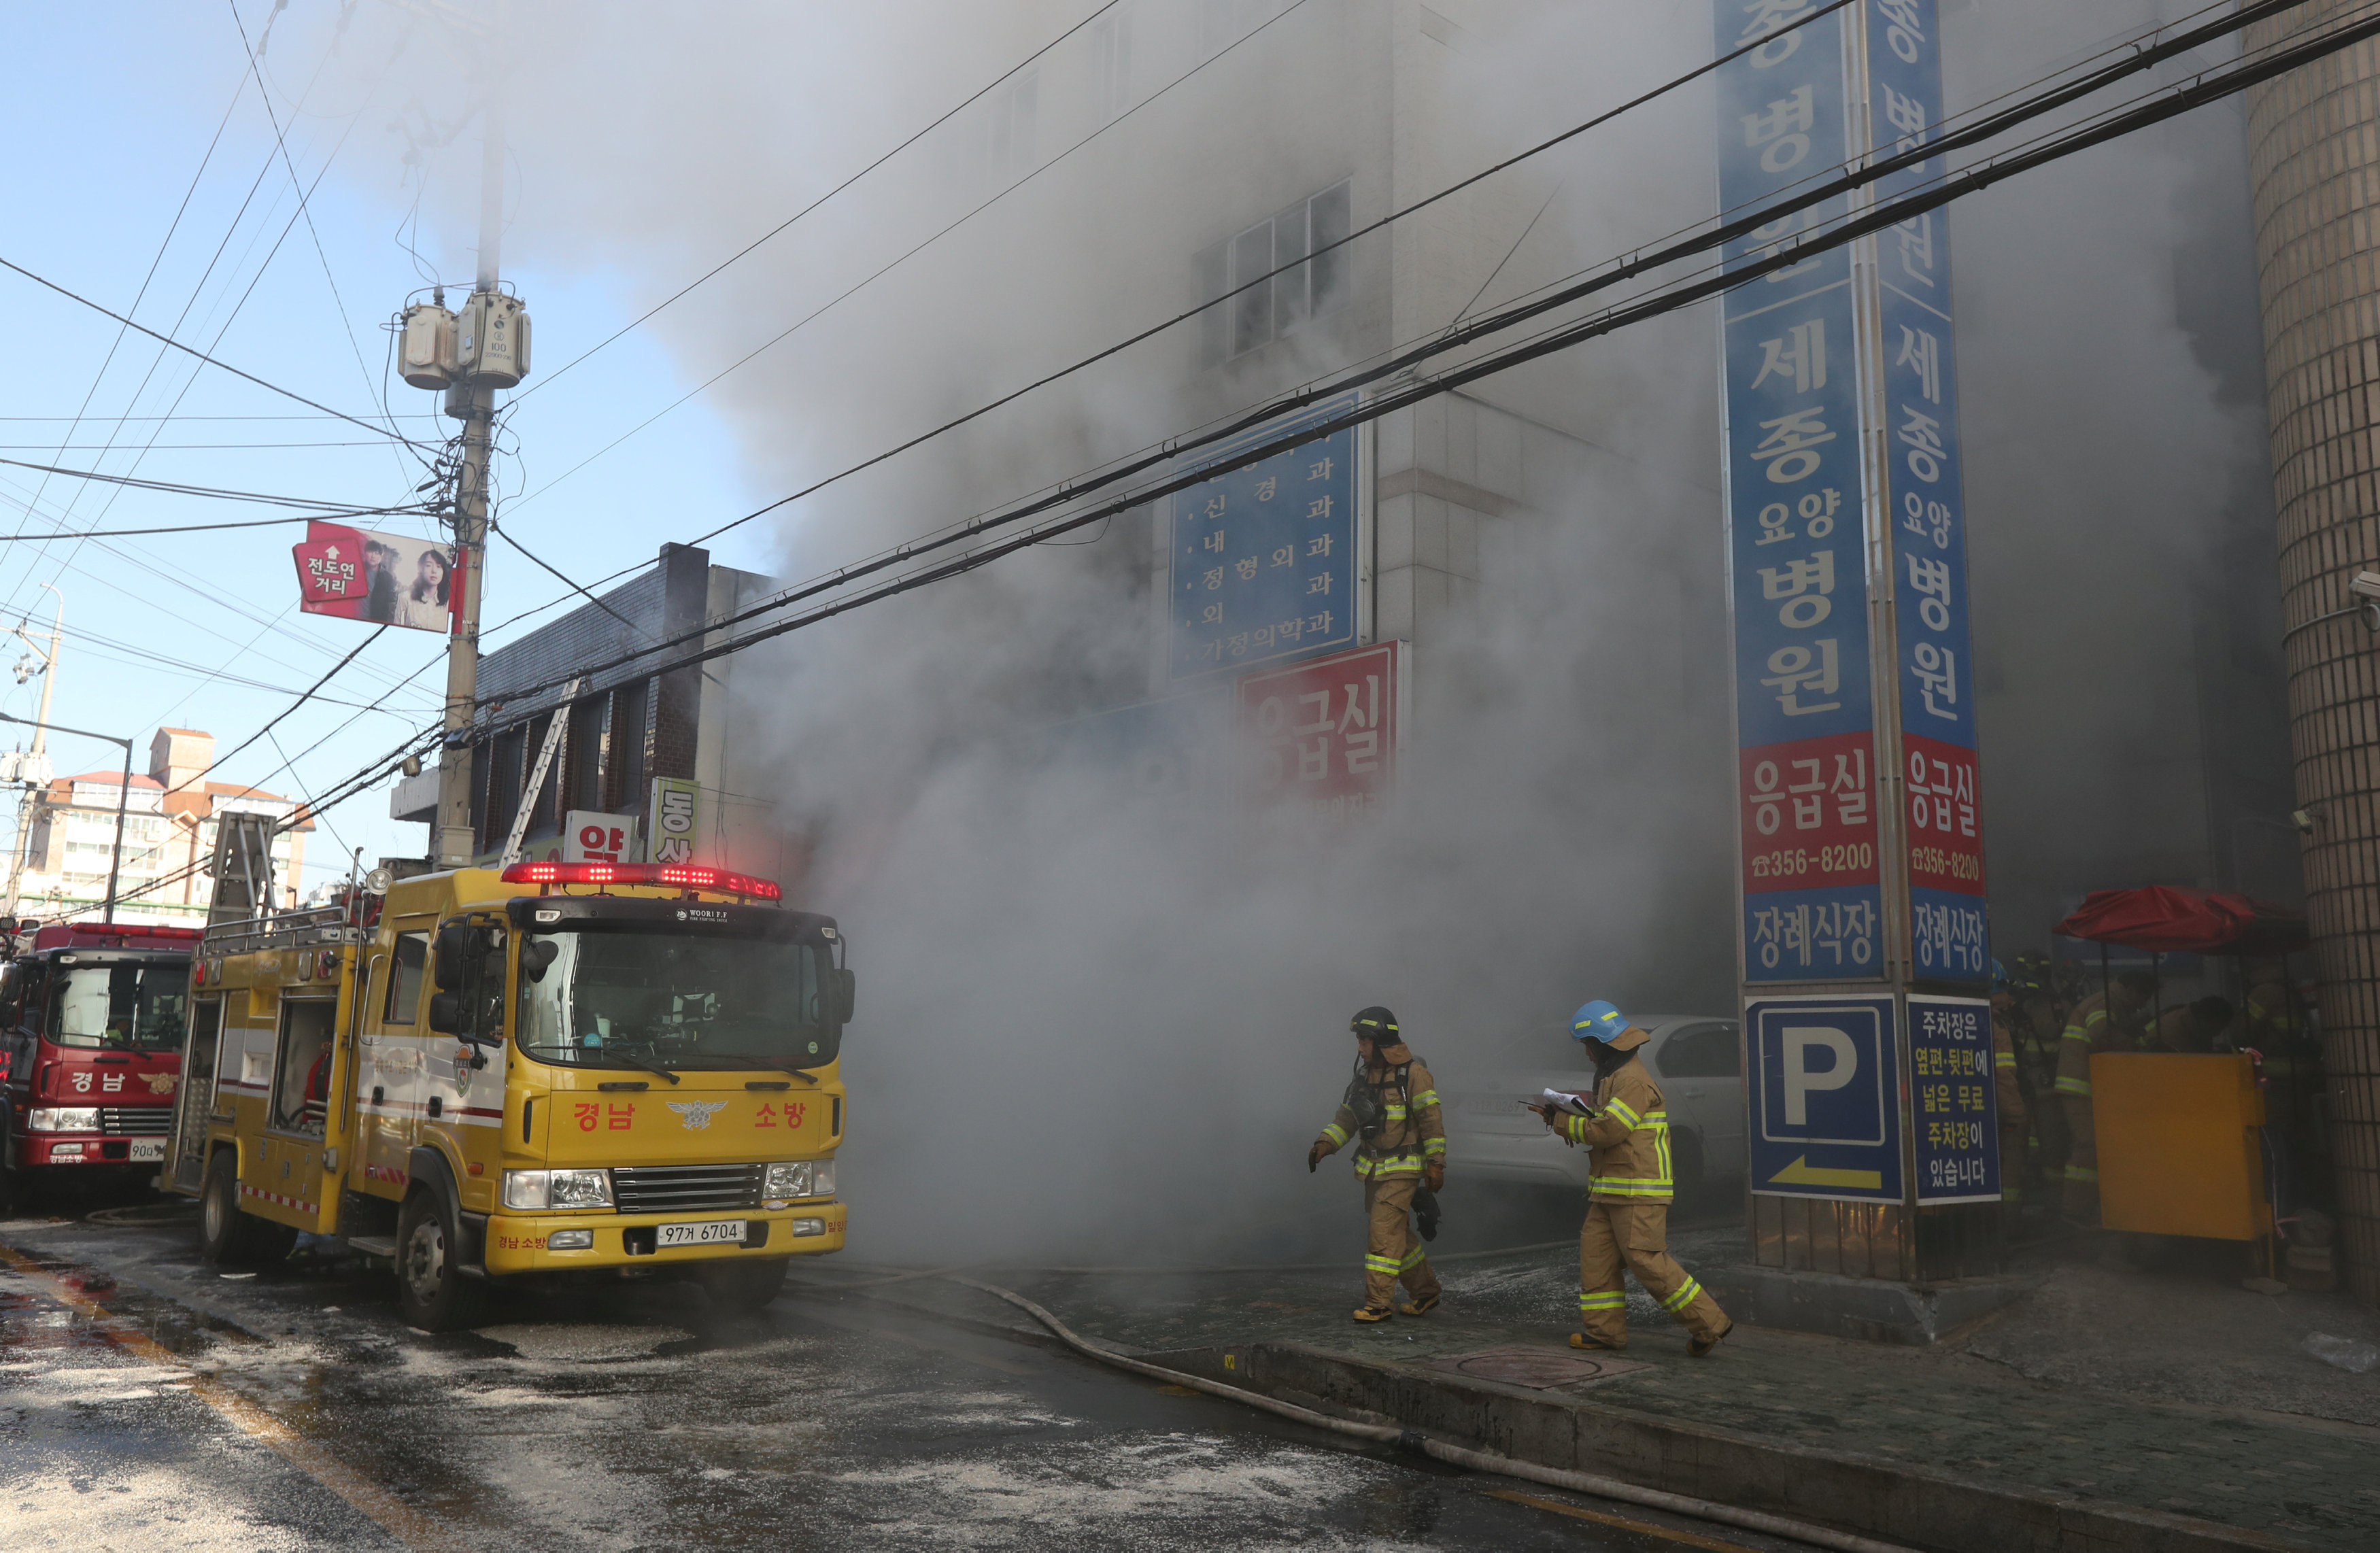 Smoke rises from a burning hospital in Miryang, South Korea, January 26, 2018.